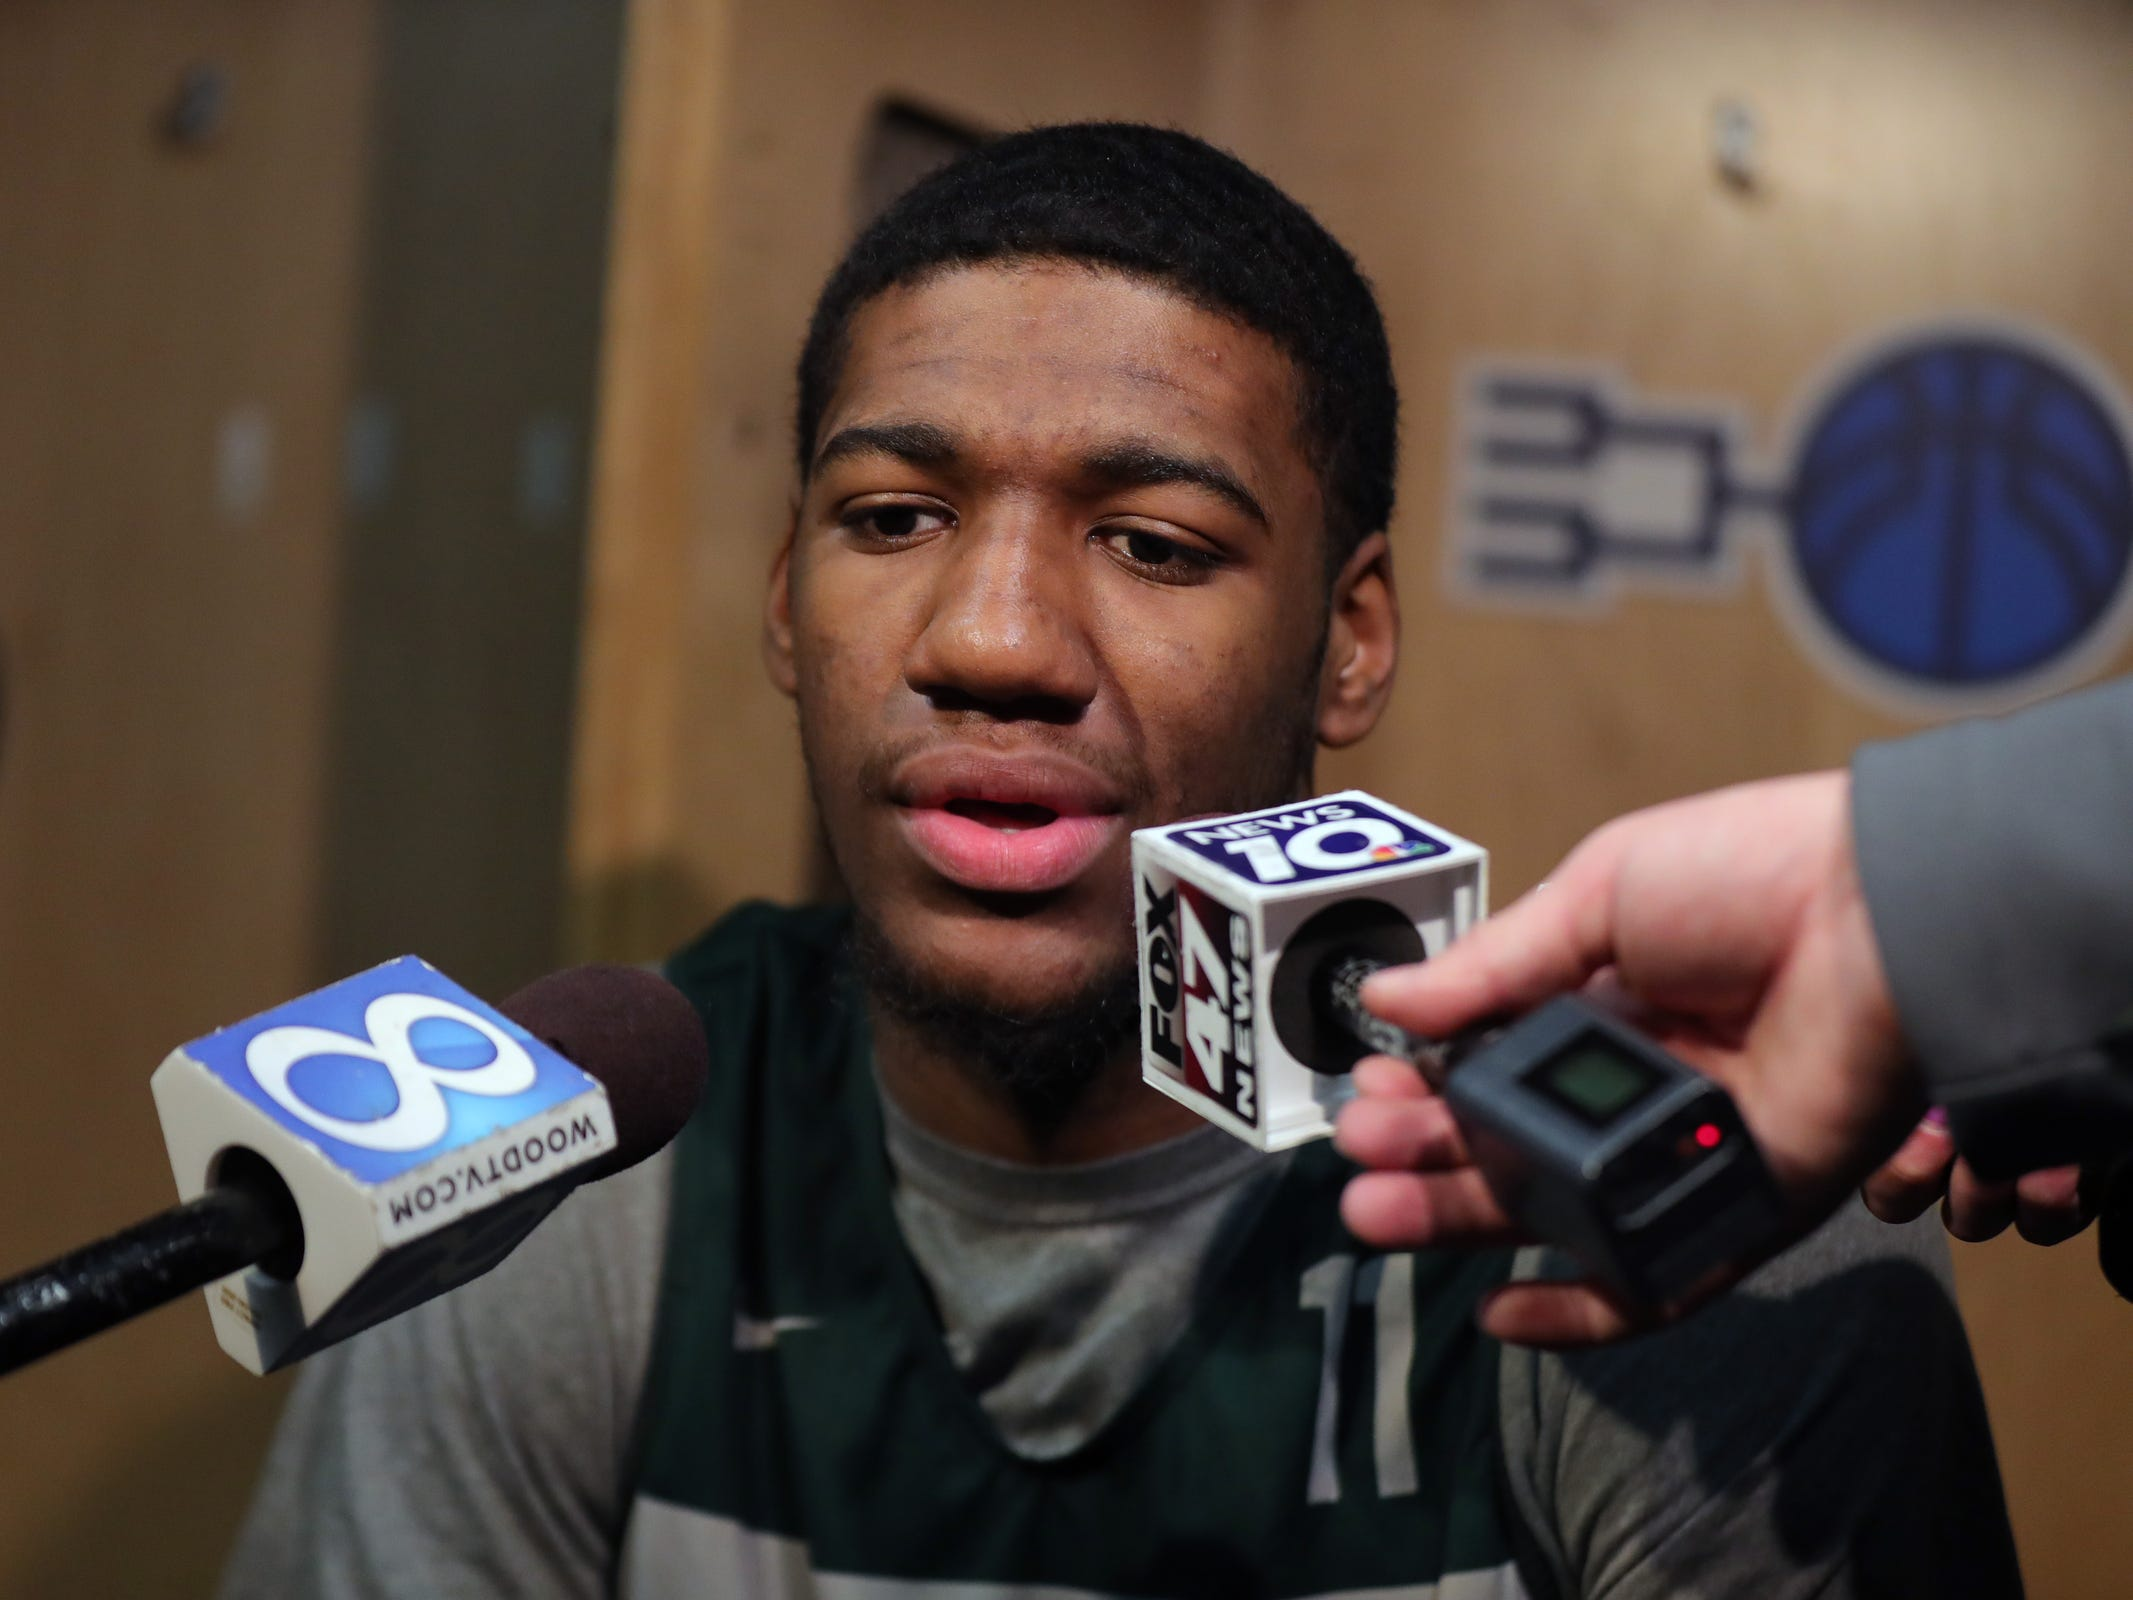 Michigan State forward Aaron Henry talks with reporters about their upcoming second round NCAA tournament game against Minnesota, Friday, March 22, 2019 at Wells Fargo Arena in Des Moines, Iowa.